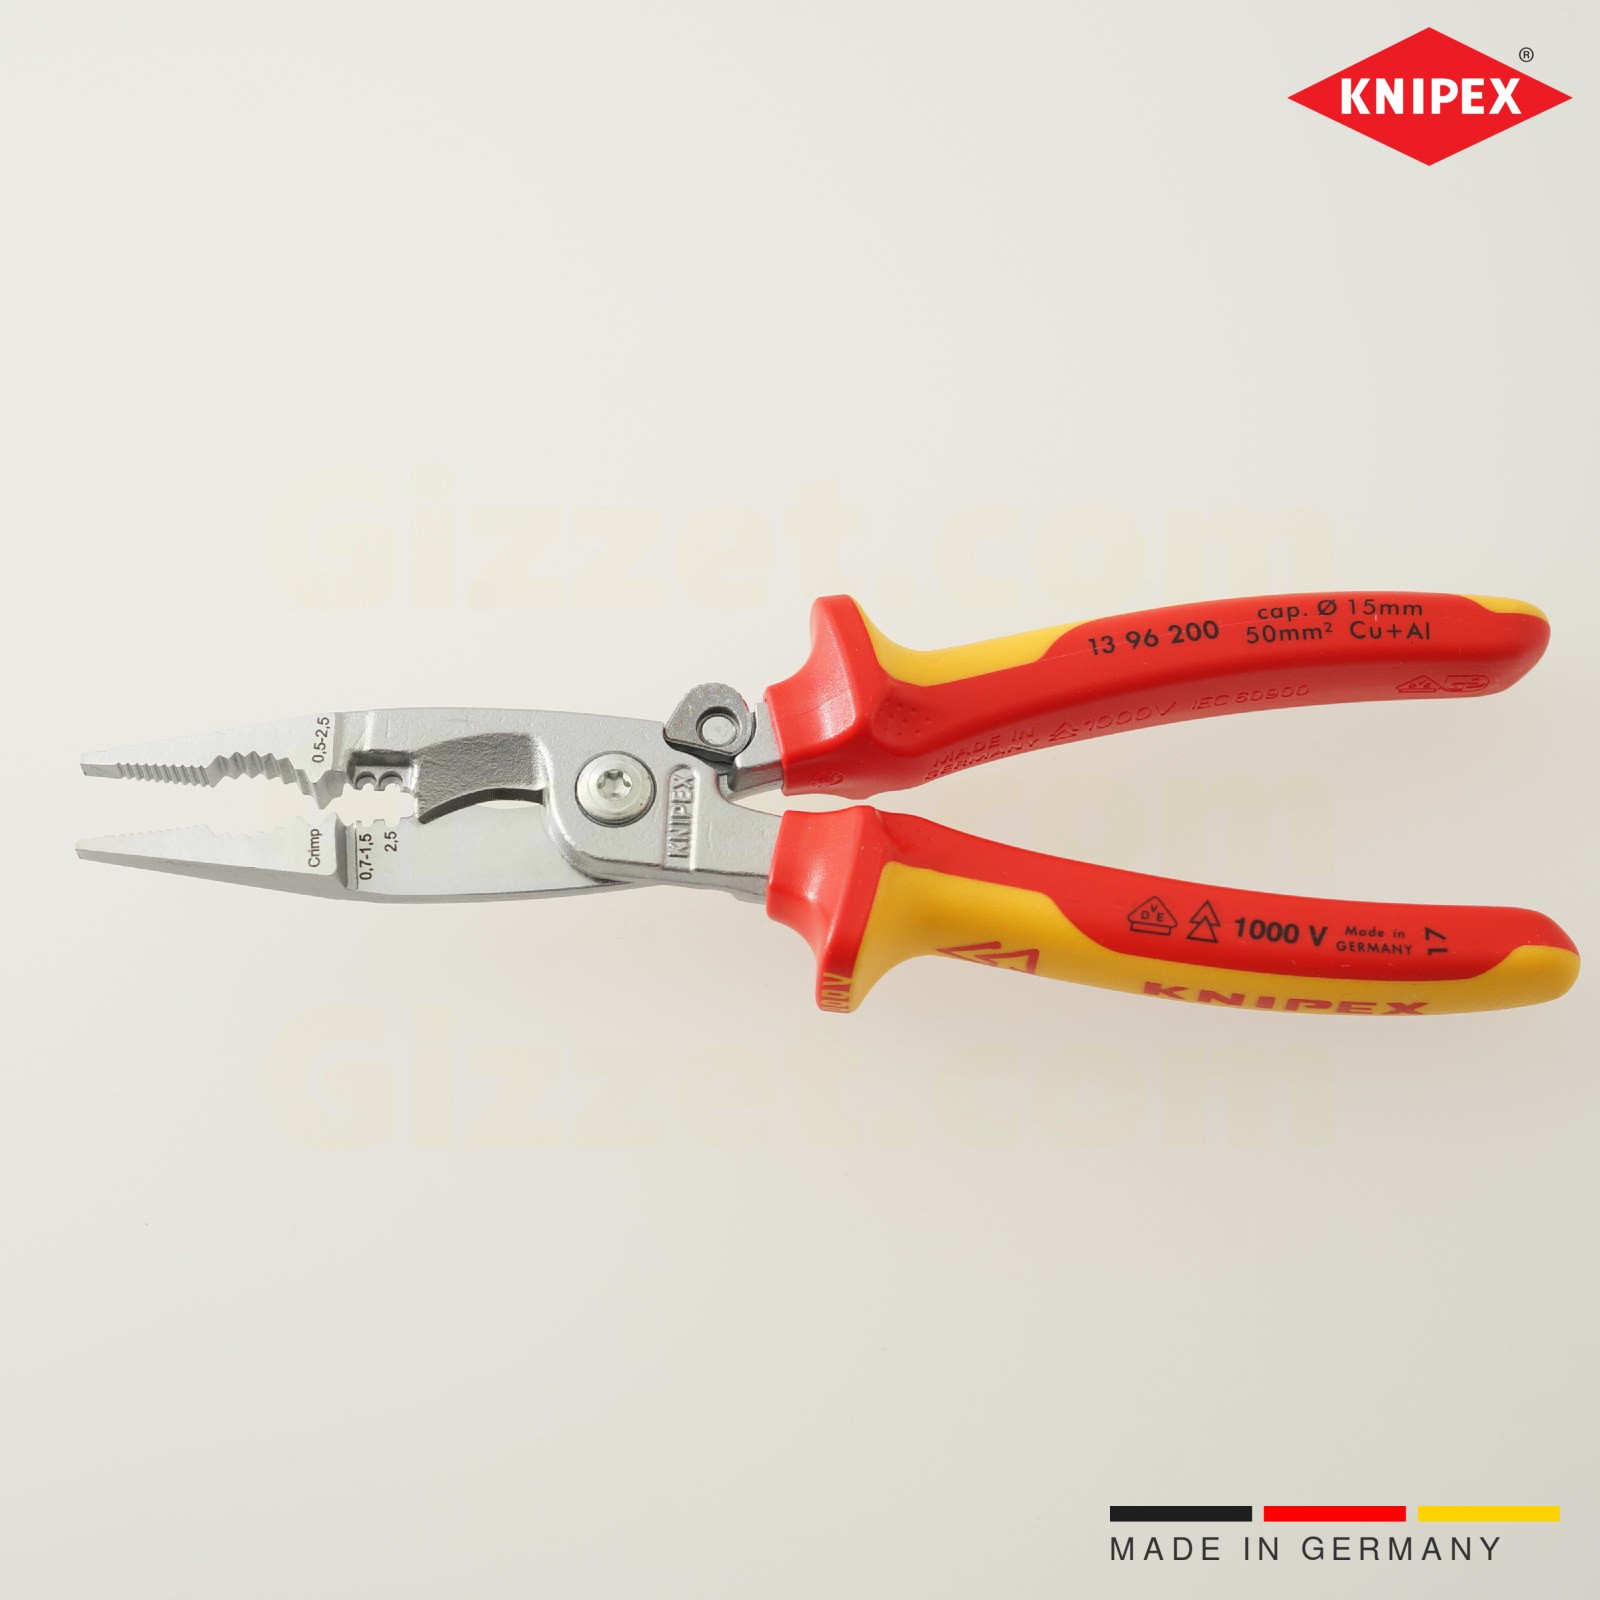 Knipex multi-functional electrical pliers